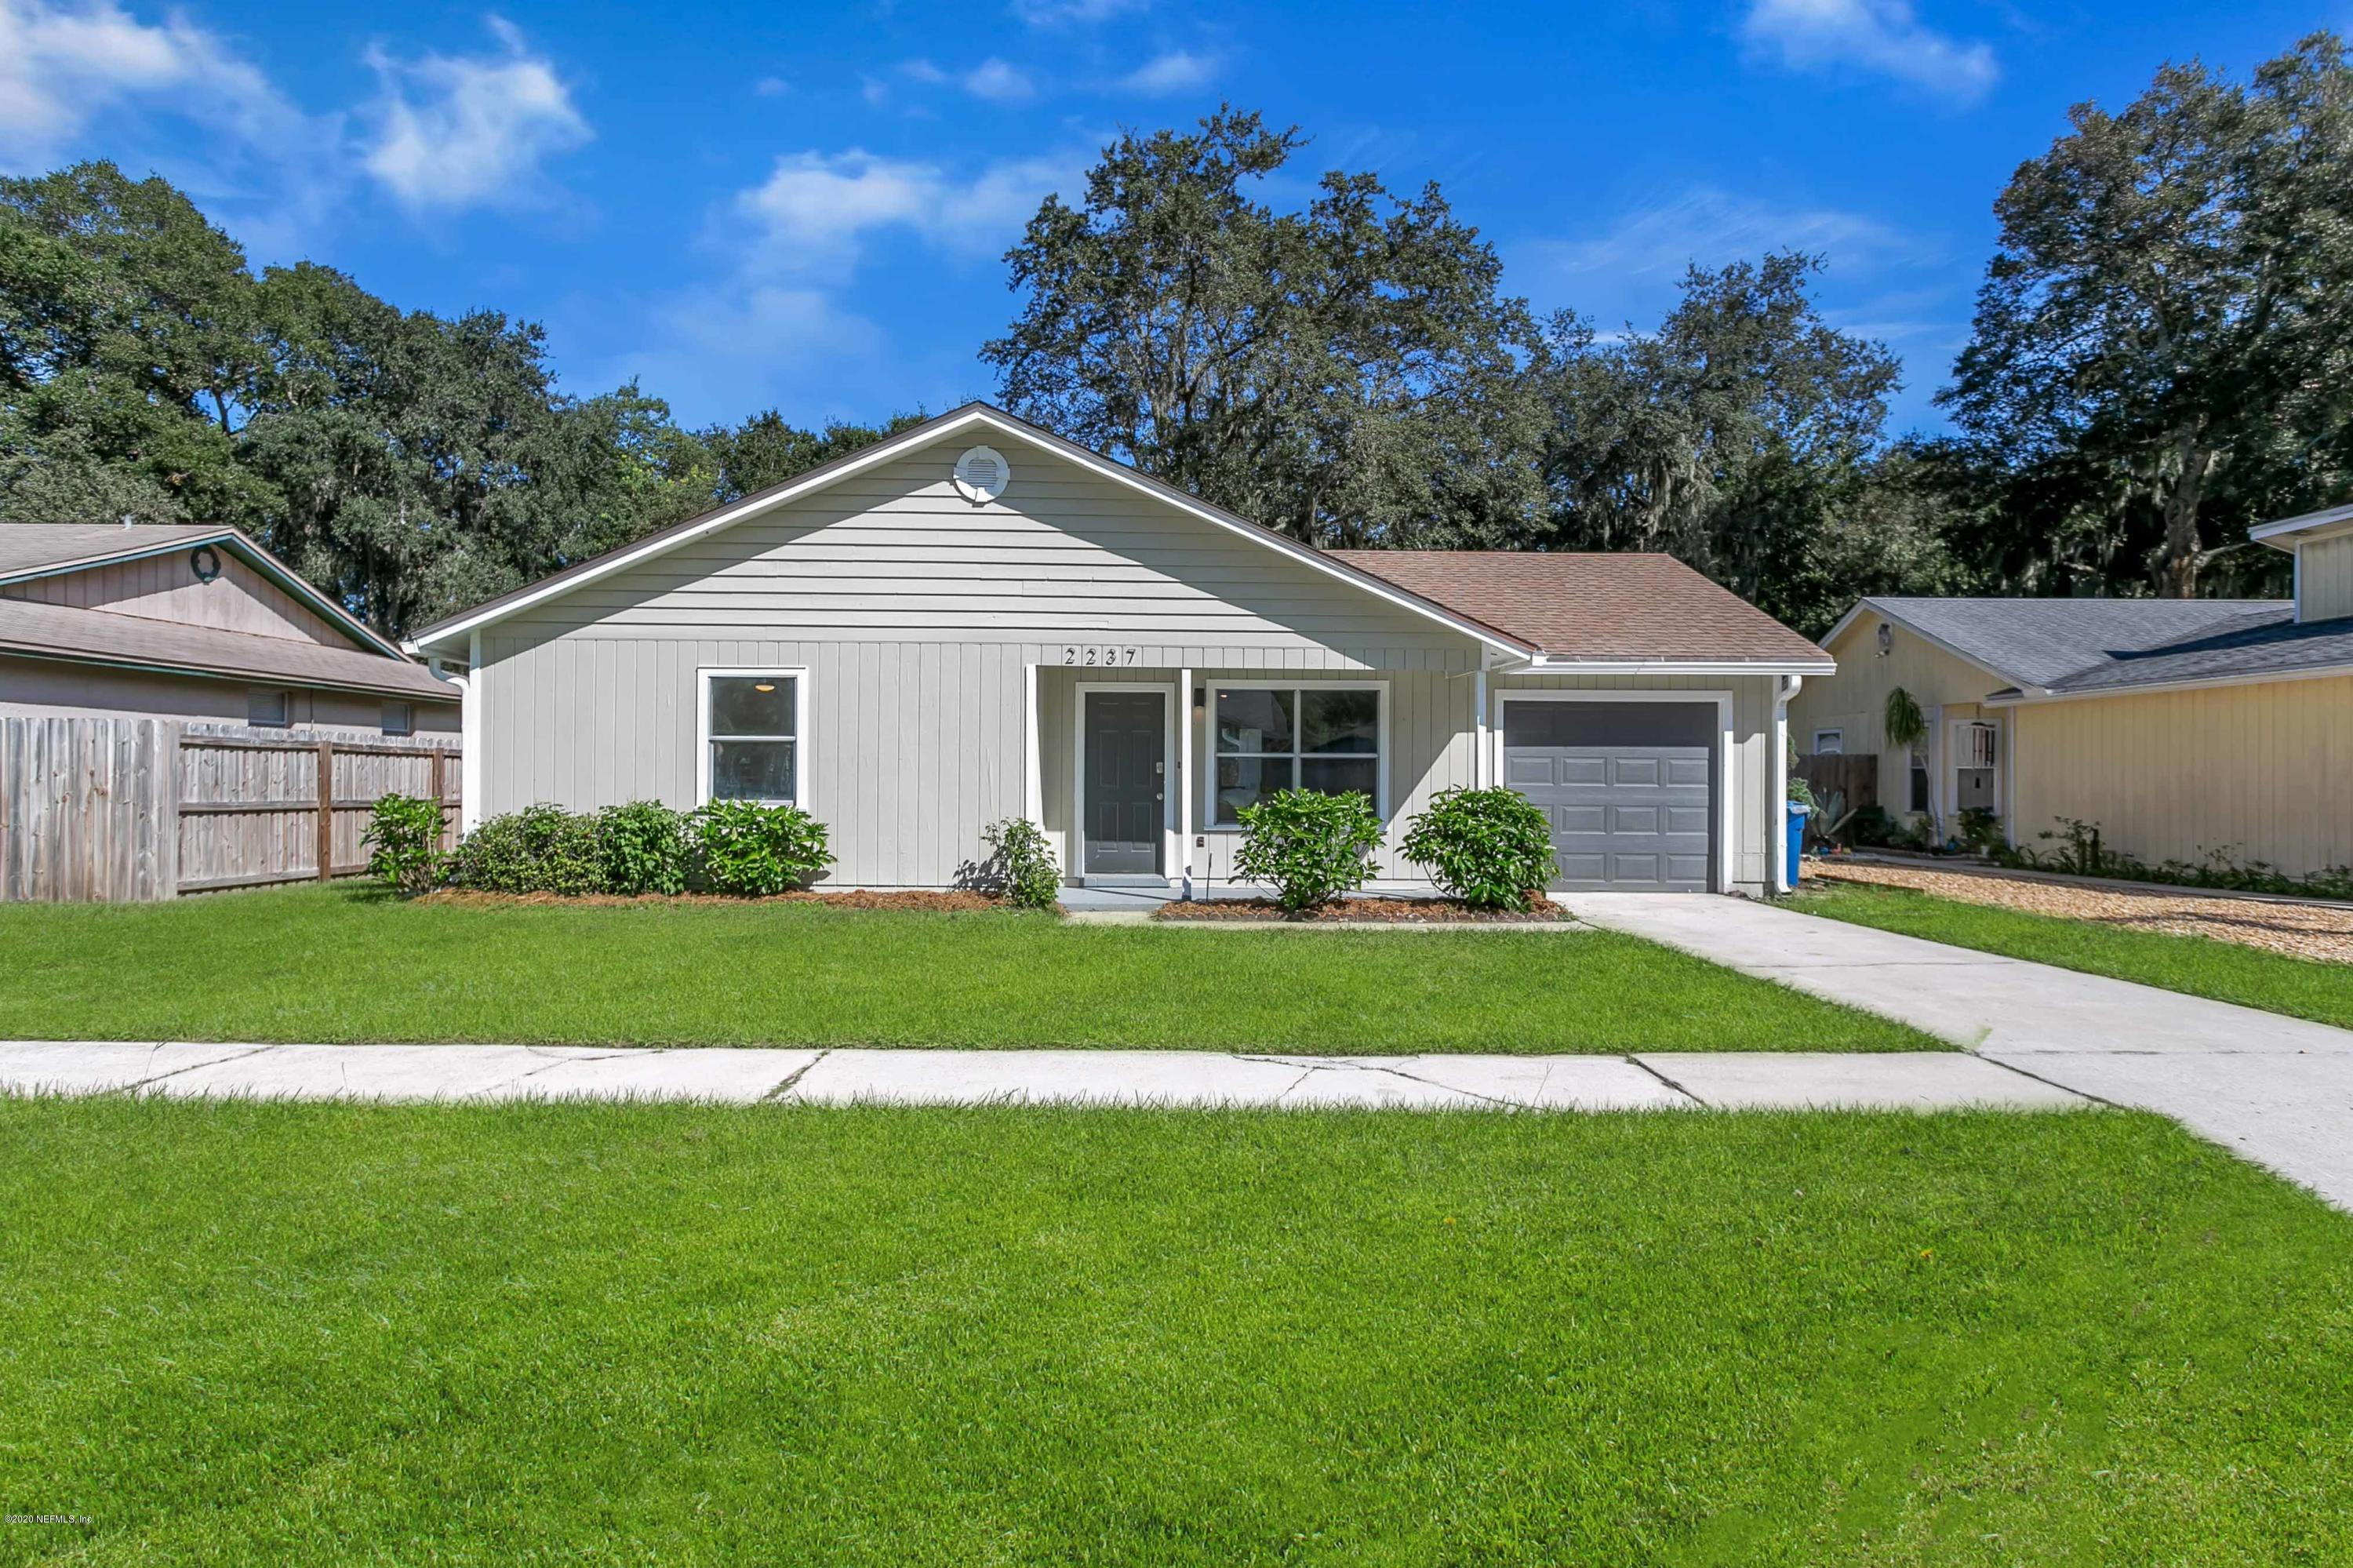 2237 CYPRESS LANDING, JACKSONVILLE, FLORIDA 32233, 4 Bedrooms Bedrooms, ,2 BathroomsBathrooms,Residential,For sale,CYPRESS LANDING,1077452